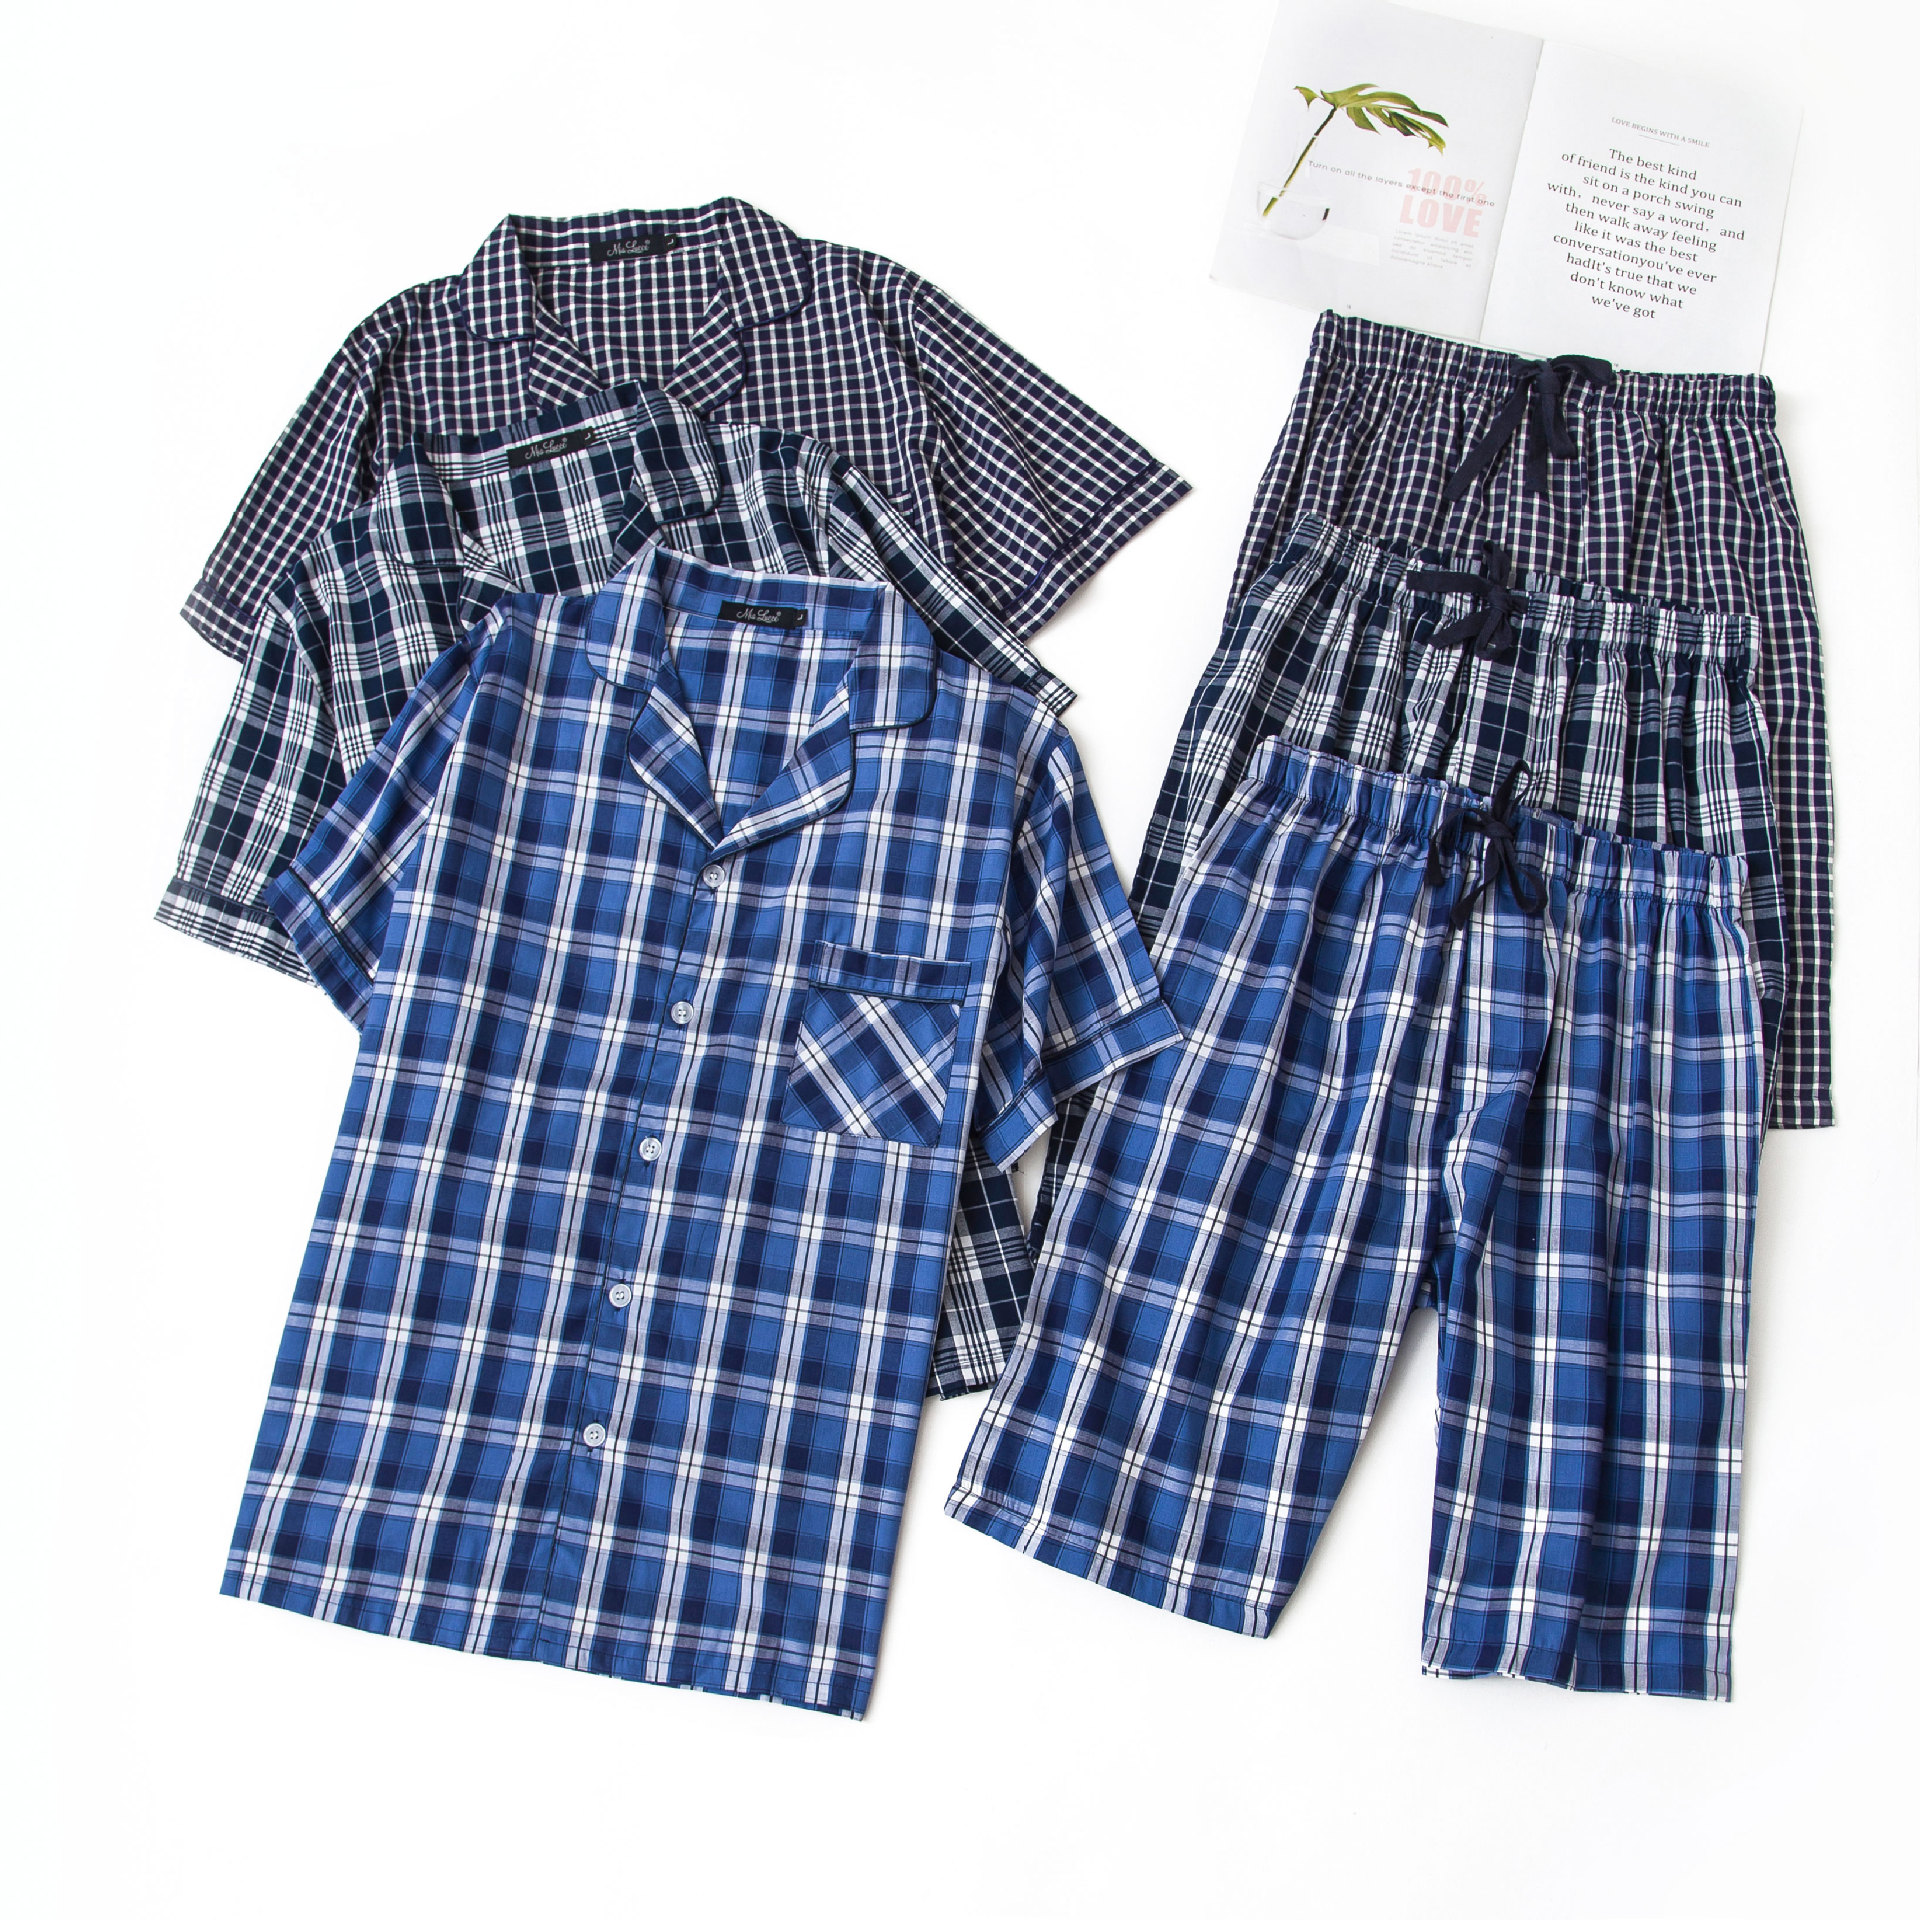 Underwear & Sleepwears Rapture Plus Size 100% Cotton Mens Summer Woven Short-sleeved Shorts Pajamas Set Male Sleep Classic Plaid Style V-neck Home Sets Colours Are Striking